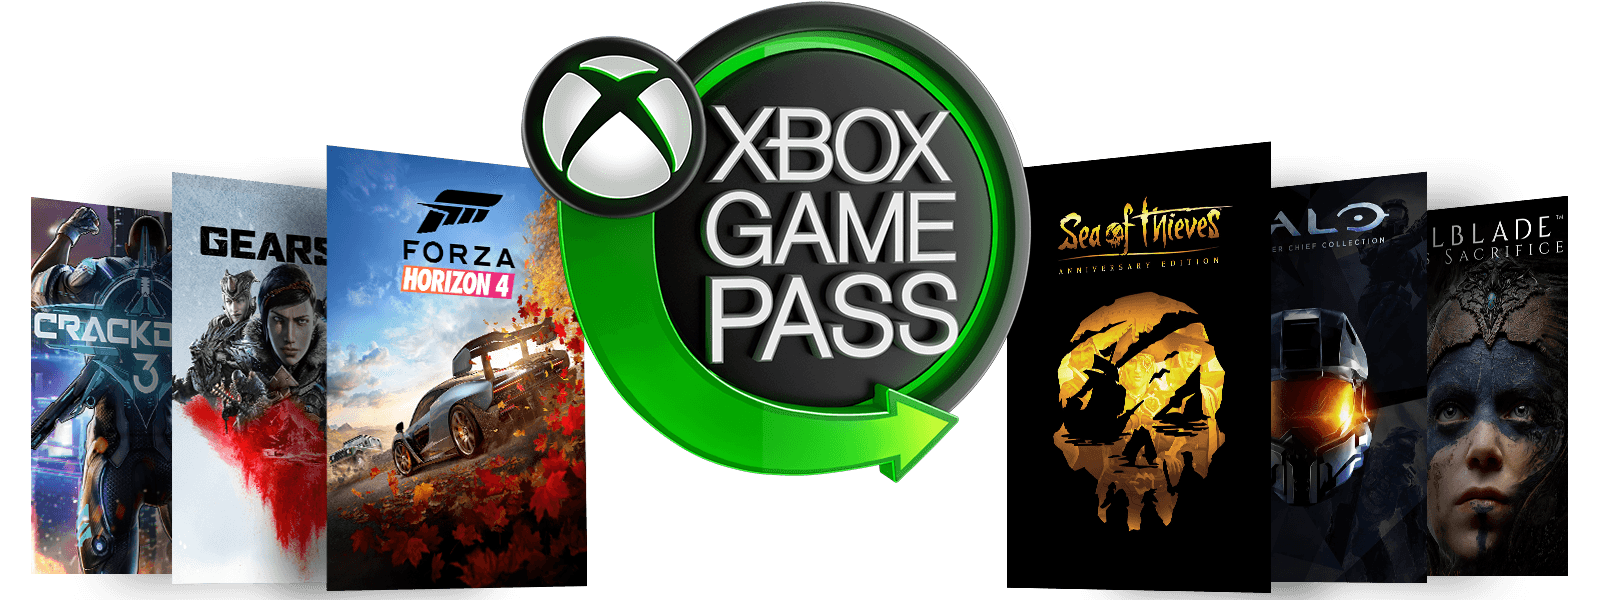 Box shots van Sea of Thieves, PLAYERUNKNOWNS Battleground, Forza Horizon 4, Crackdown 3, Halo The Master Chief Collection en Hellblade Senuas Sacrifice rond het neon-Xbox Game Pass-logo